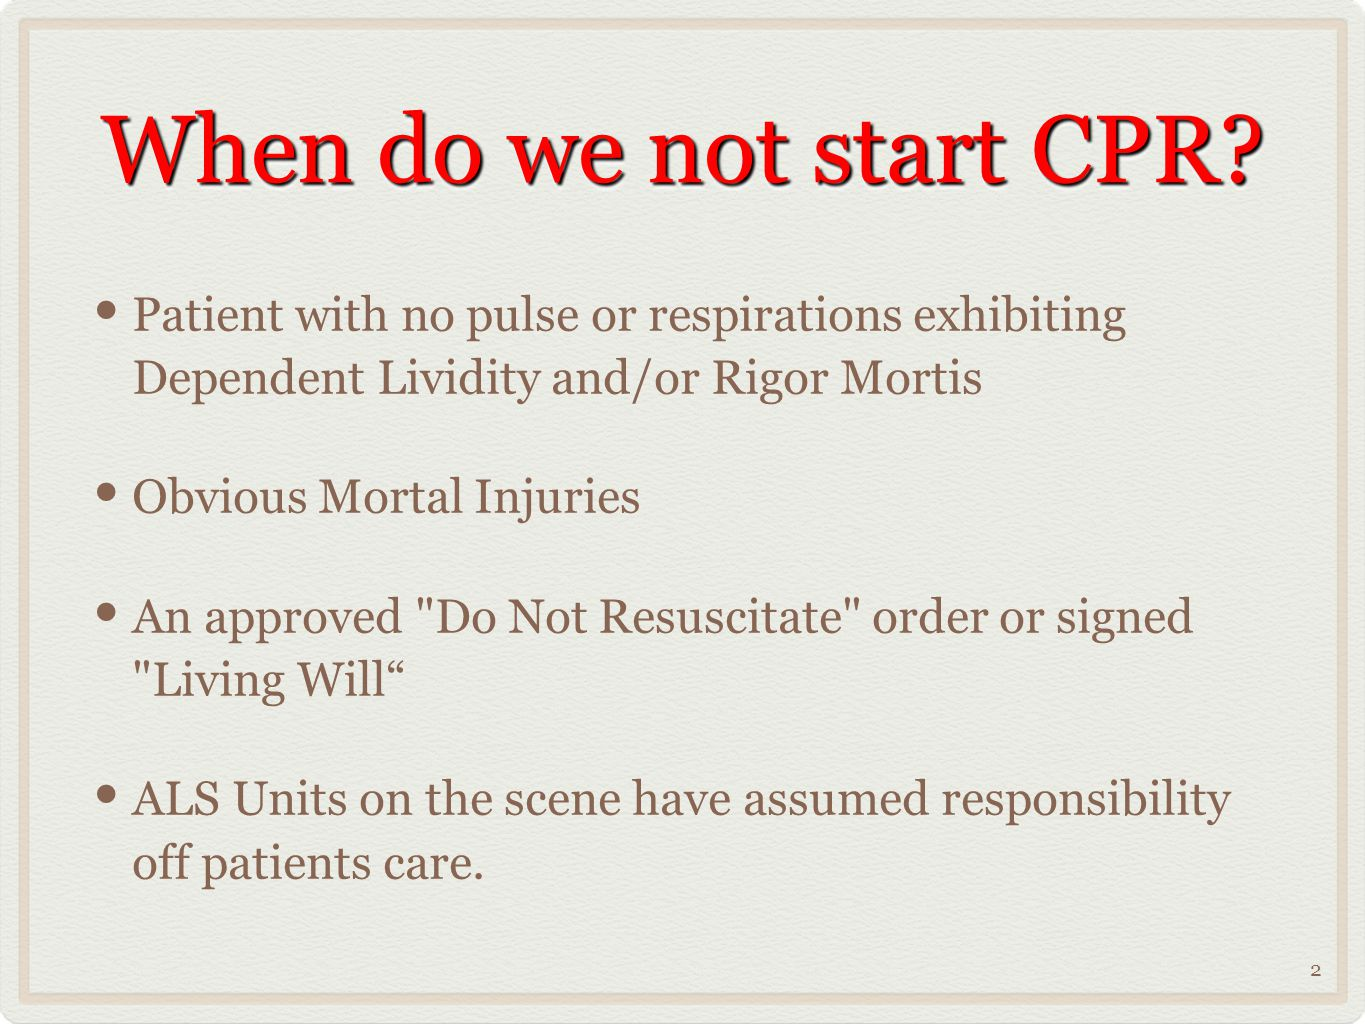 When do we not start CPR Patient with no pulse or respirations exhibiting Dependent Lividity and/or Rigor Mortis.